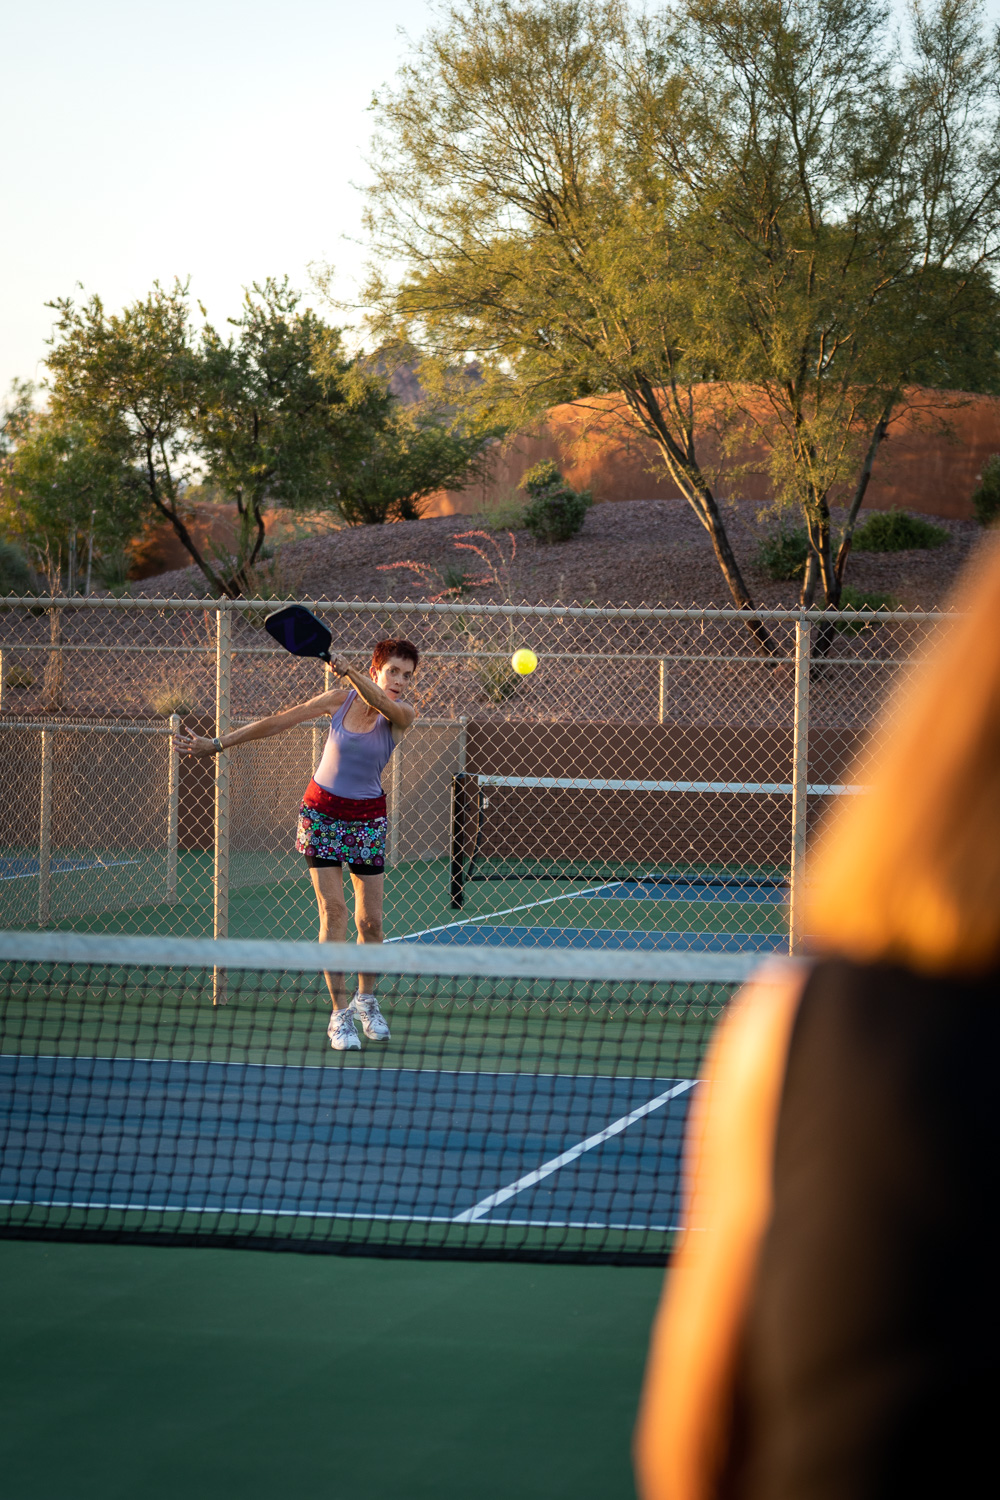 20200622_ESC-PickleBall-0180-web900